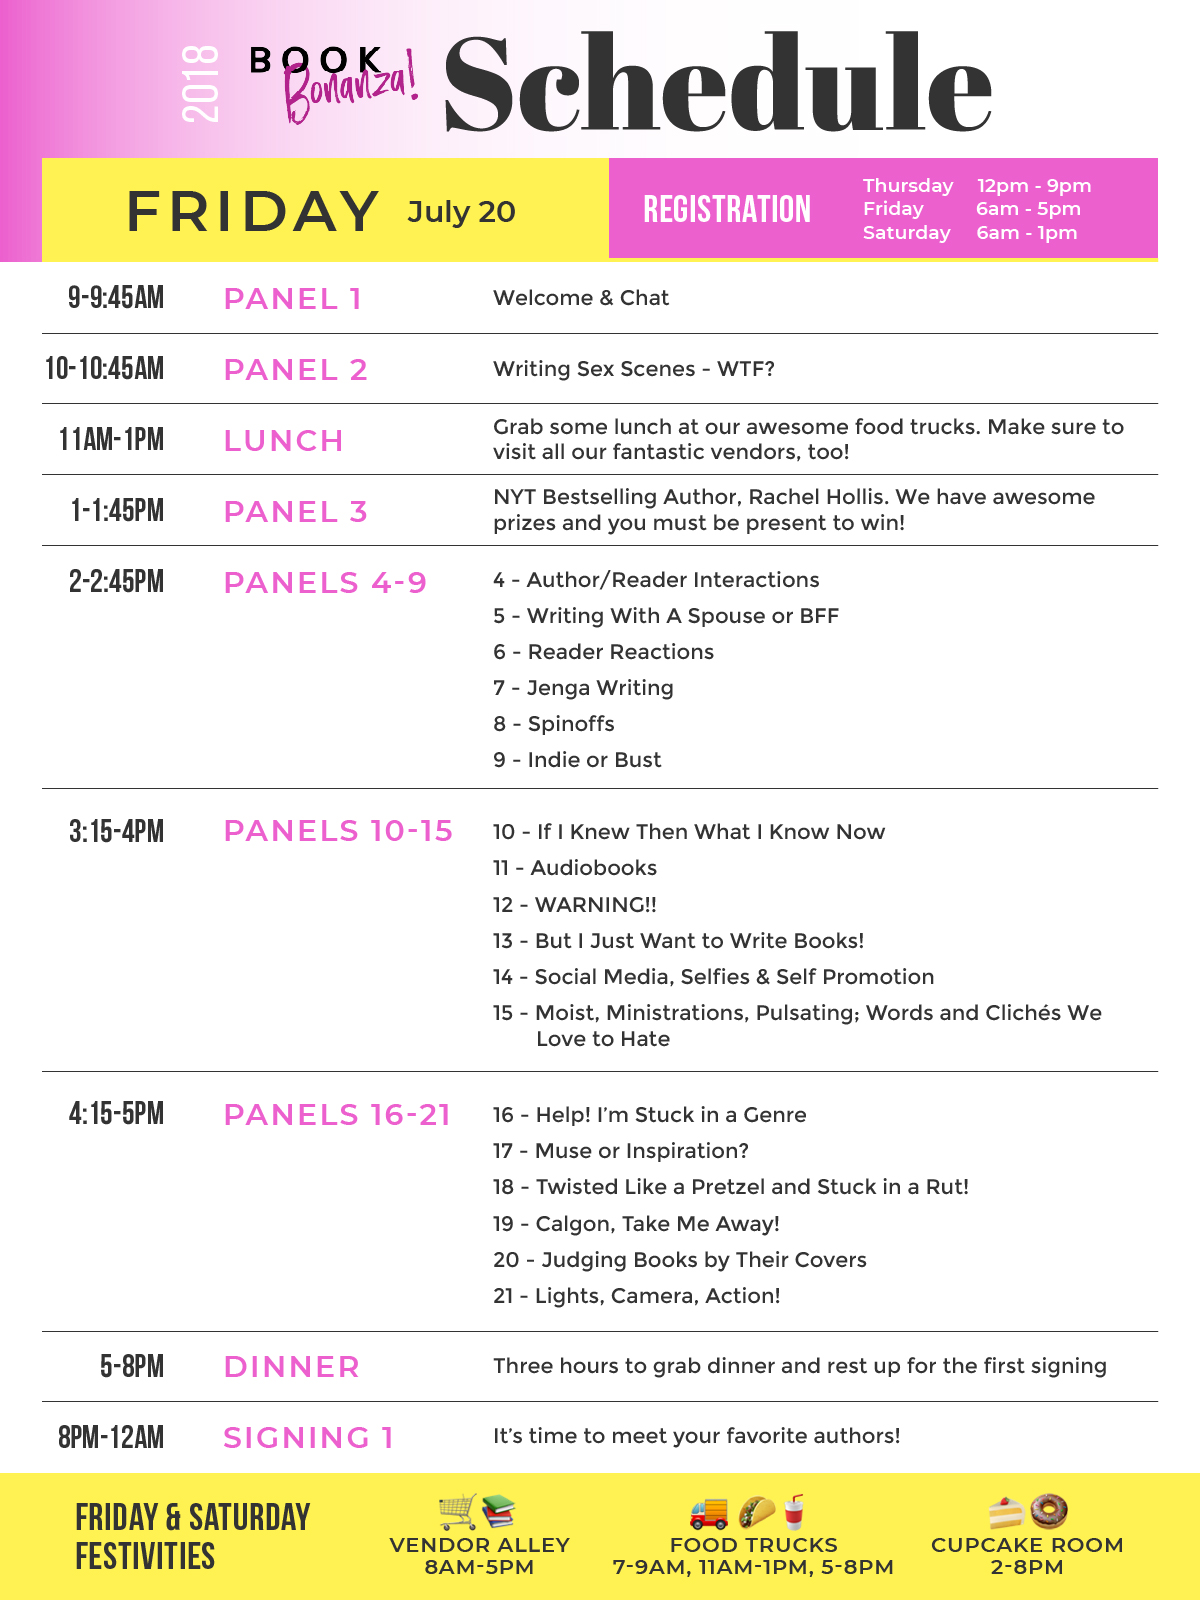 01 Book Bonanza 2018 Schedule Friday (3).jpg